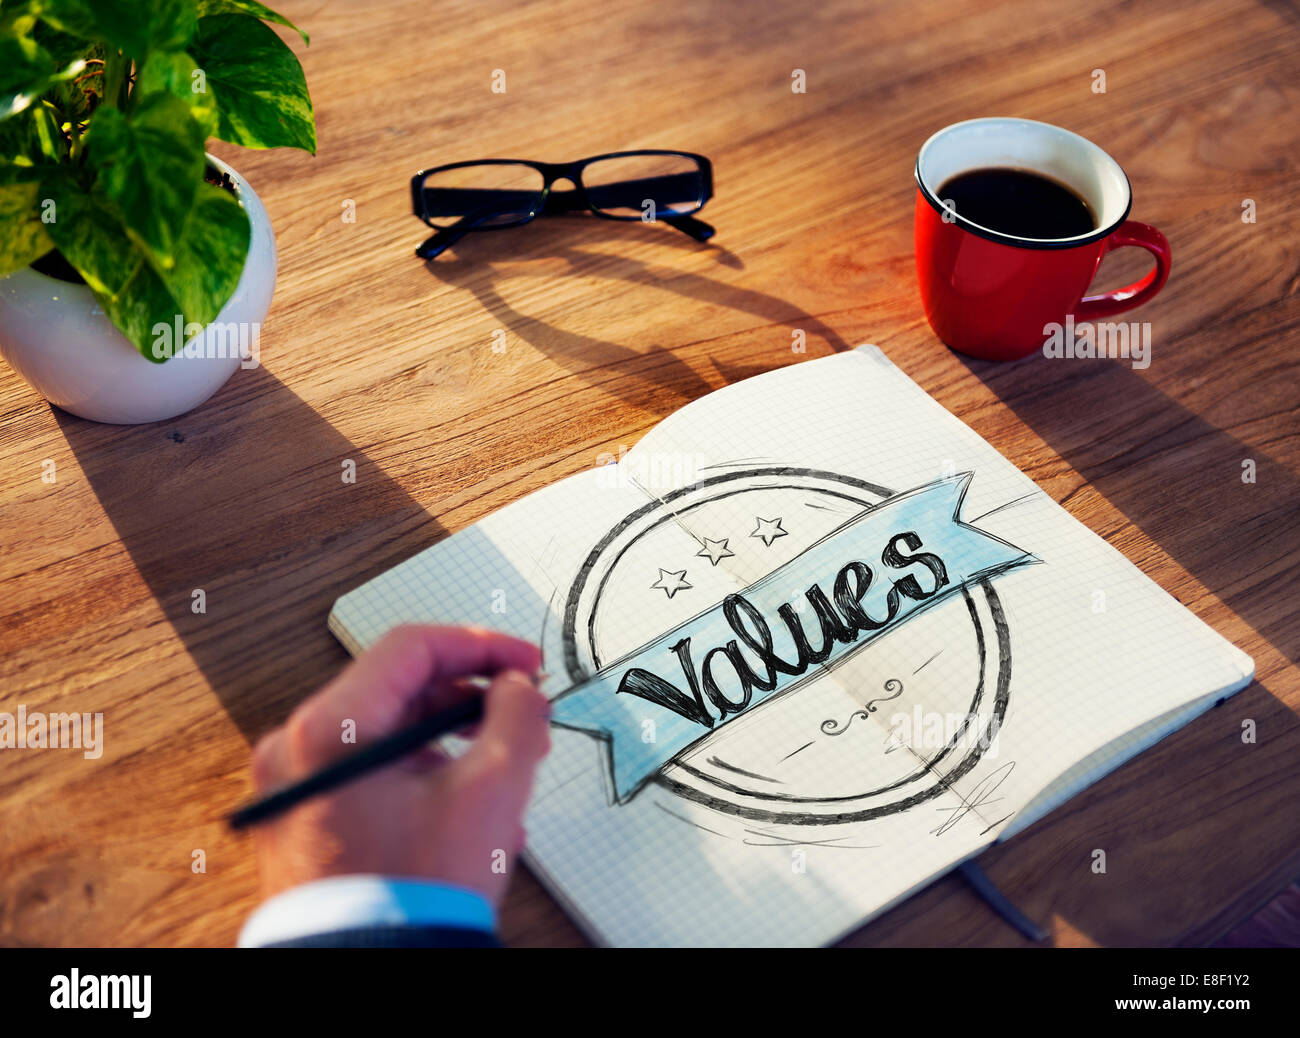 Businessman Brainstorming About Values - Stock Image